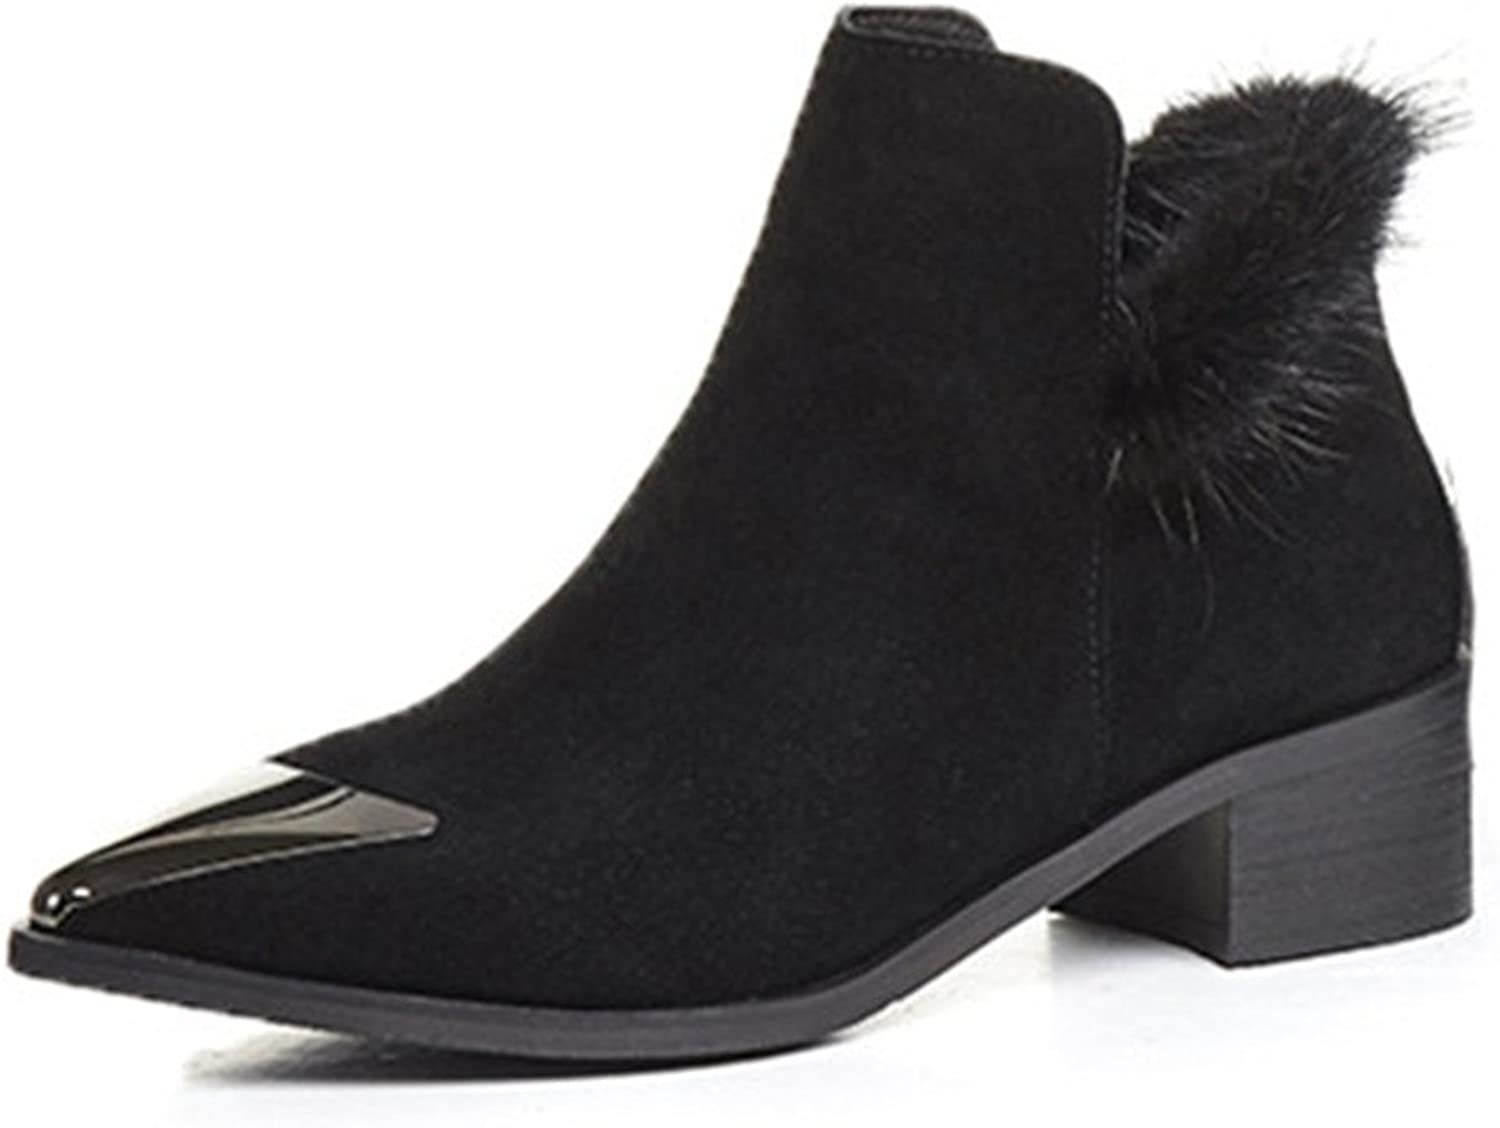 Nine Seven Suede Leather Women's Pointed Cap Toe Chunky Heel Handmade Ankle Bootie with Fur